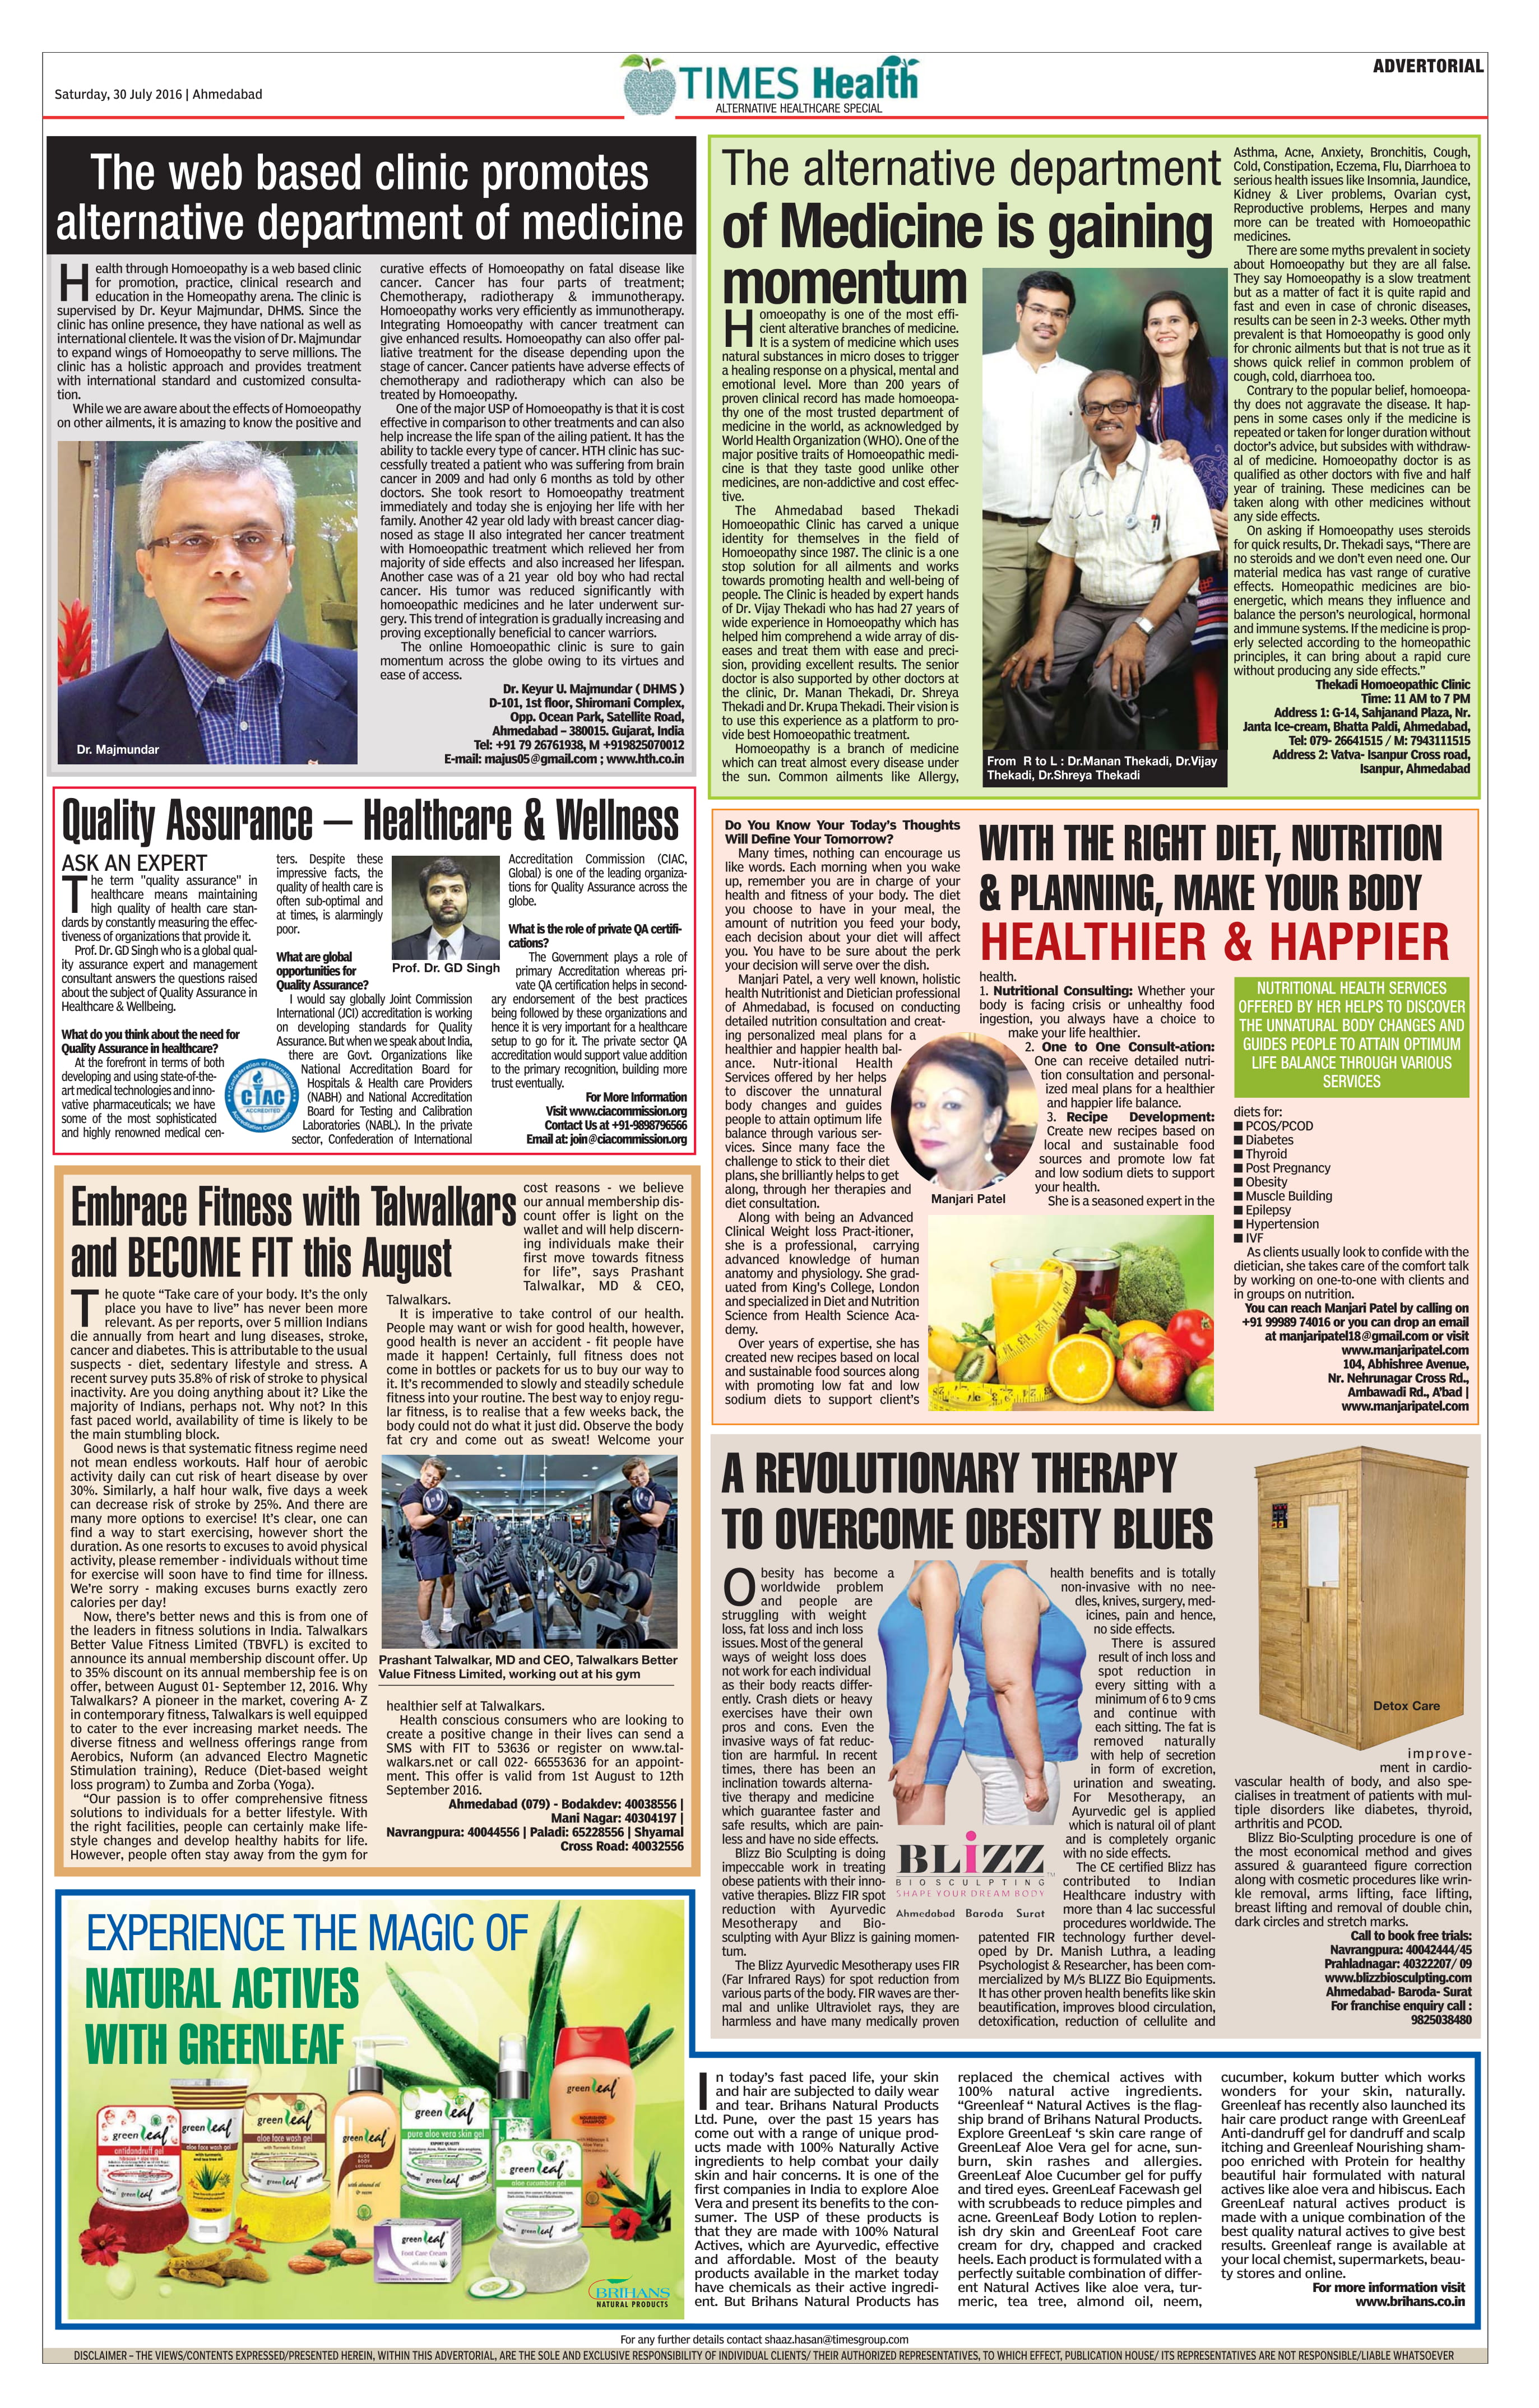 prof-dr-gd-singh-the-founder-president-of-ciac-global-appeared-in-toi-featured-ask-the-expert-healthcare-column-on-july-30-2016